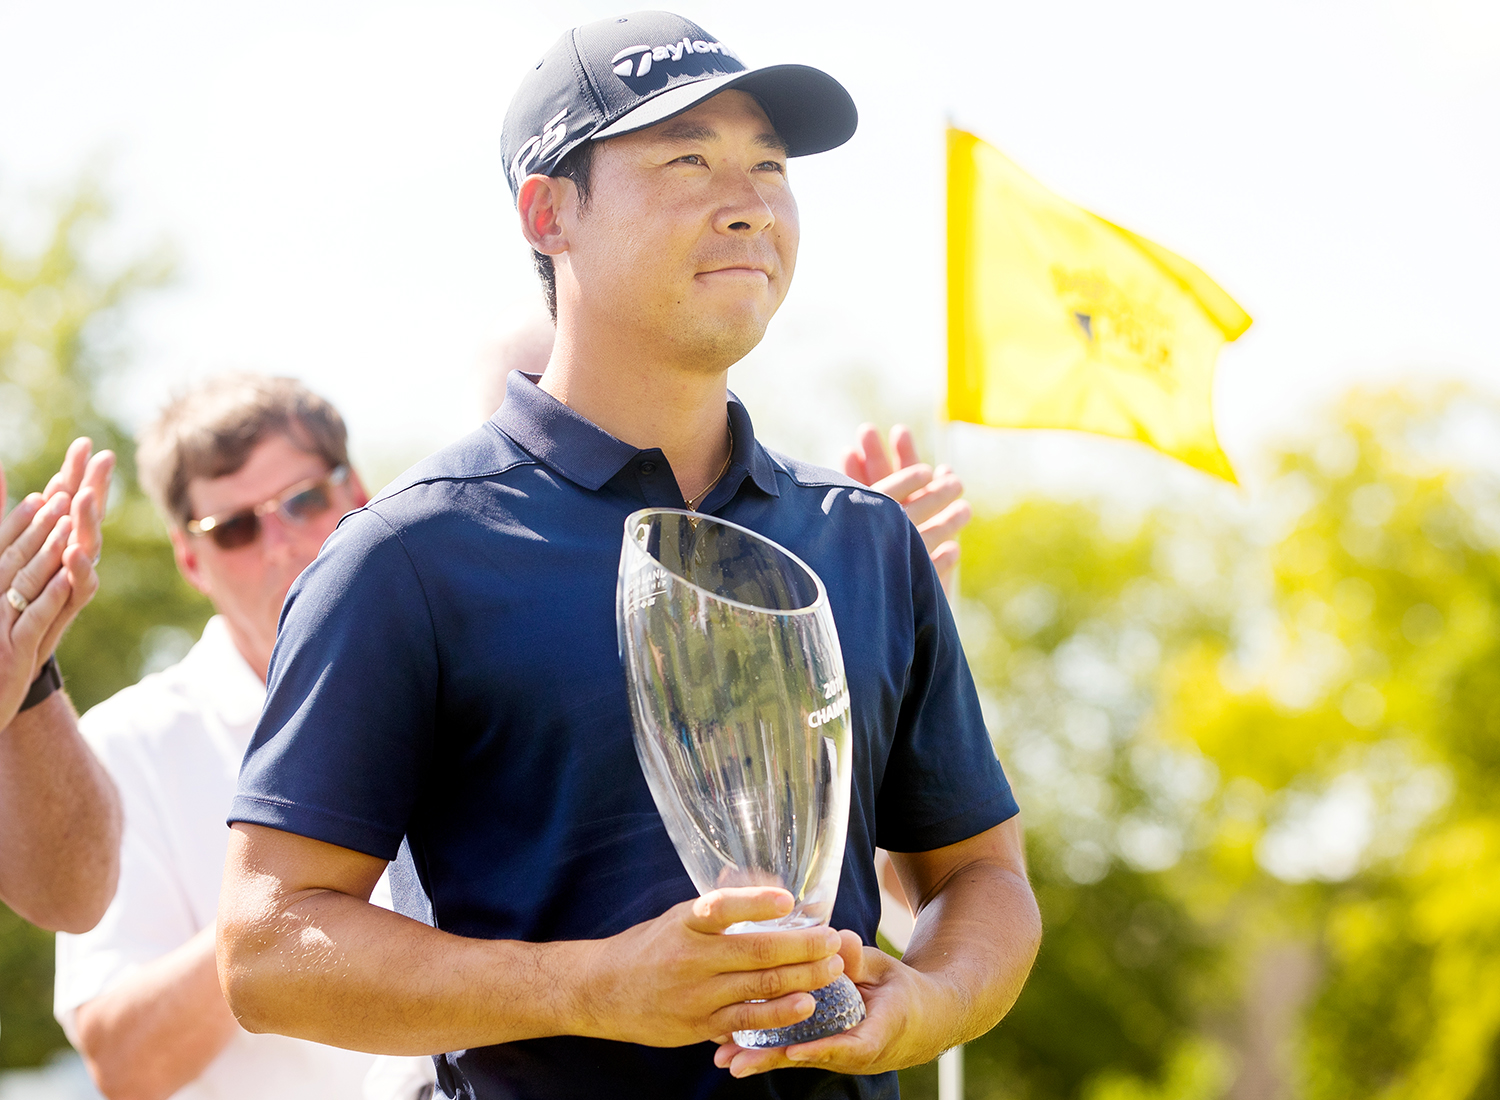 The 2019 Web.com Tour's Land of Lincoln Championship winner, Xinjun Zhang, poses with his trophy on the 18th green at Panther Creek Country Club golf course Sunday, June 16, 2019. Zhang survived a three-hole playoff against Dylan Wu to earn his second tour win this year. [Ted Schurter/The State Journal-Register]